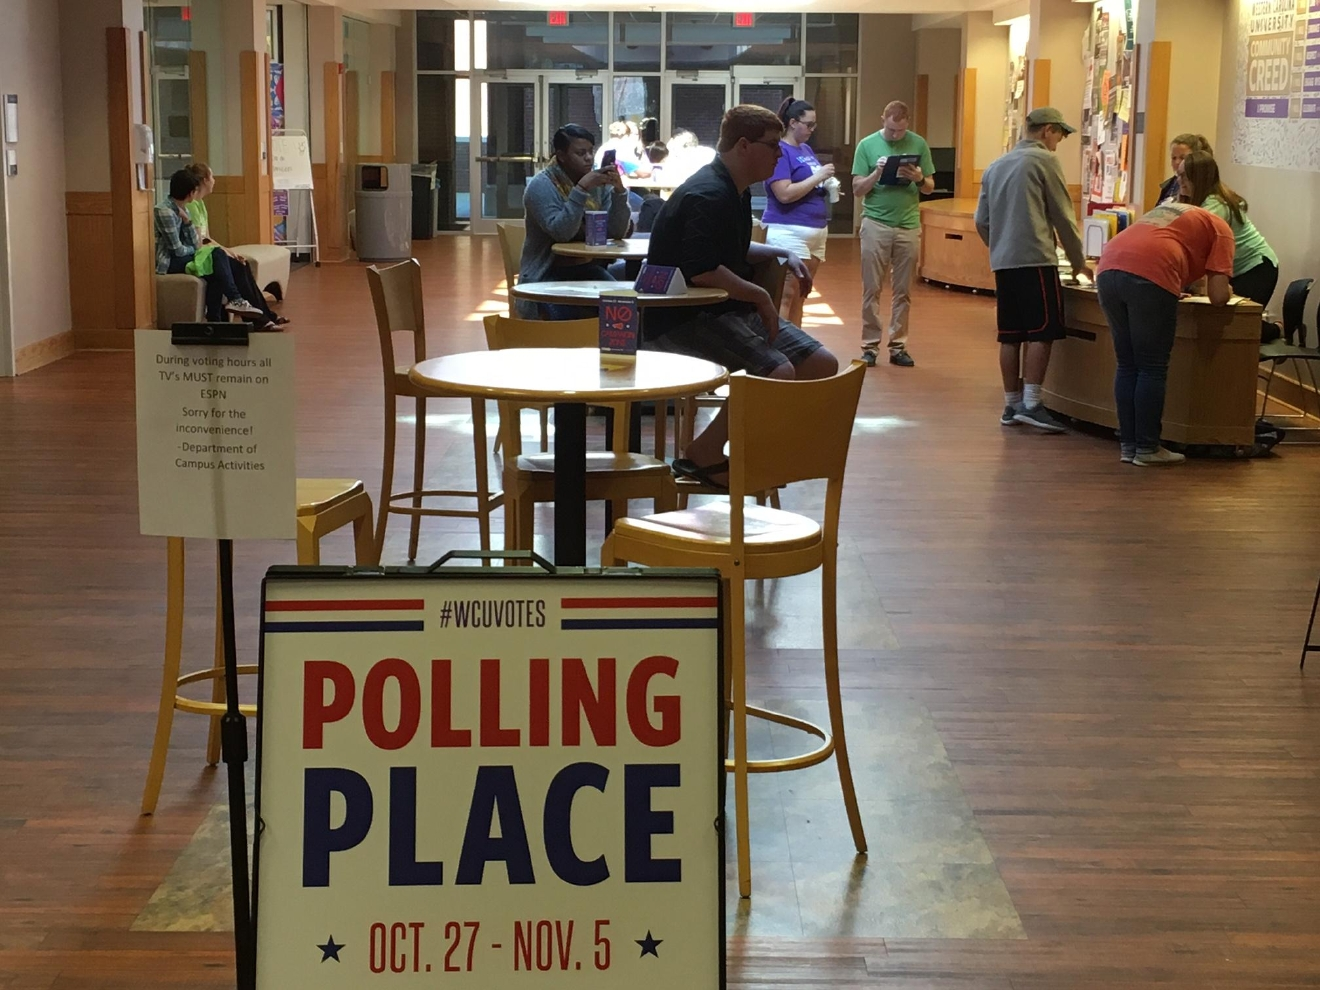 News 13 wondered whether these last minute election surprises, like  more investigation into Hillary Clinton's emails and Sen. Burr's comments about Clinton, have an impact on voters. News 13 took the question to a political science professor at Western Carolina University. (Photo credit: WLOS staff)